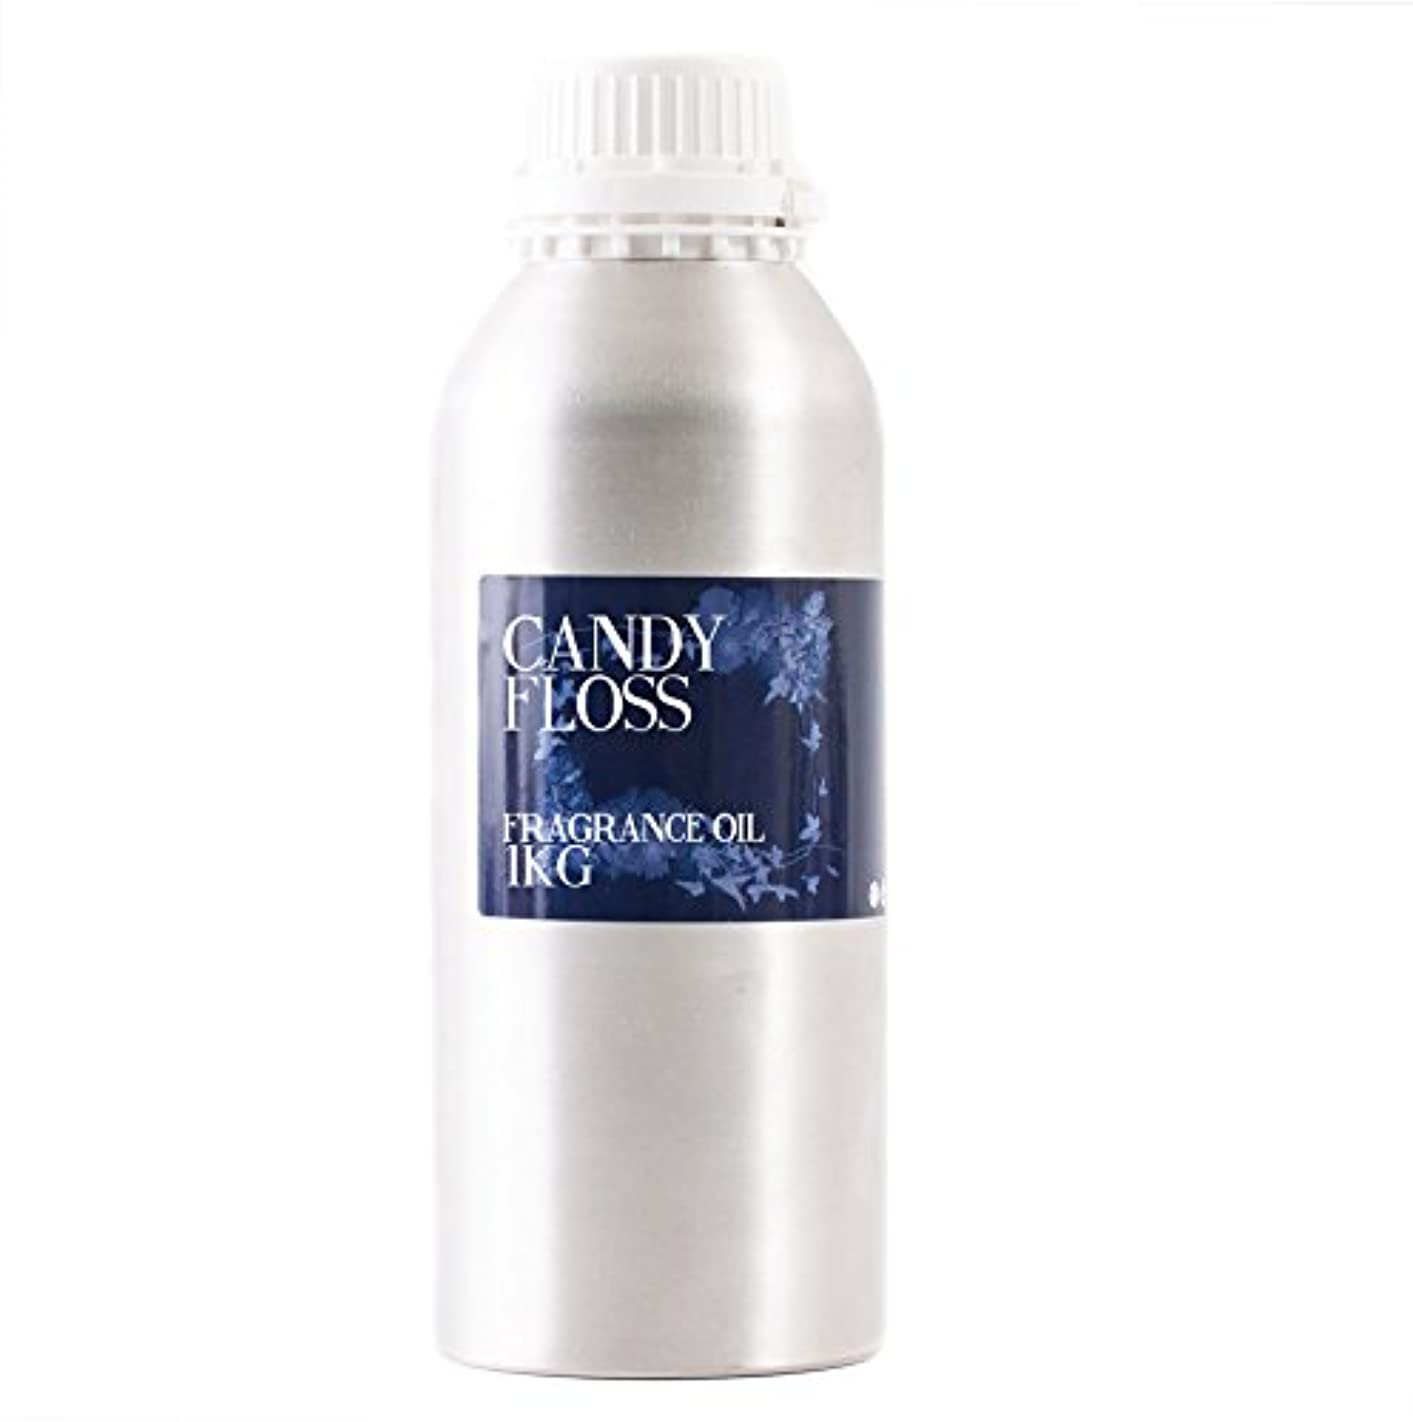 愛されし者モス暖かくMystic Moments | Candy Floss Fragrance Oil - 1Kg